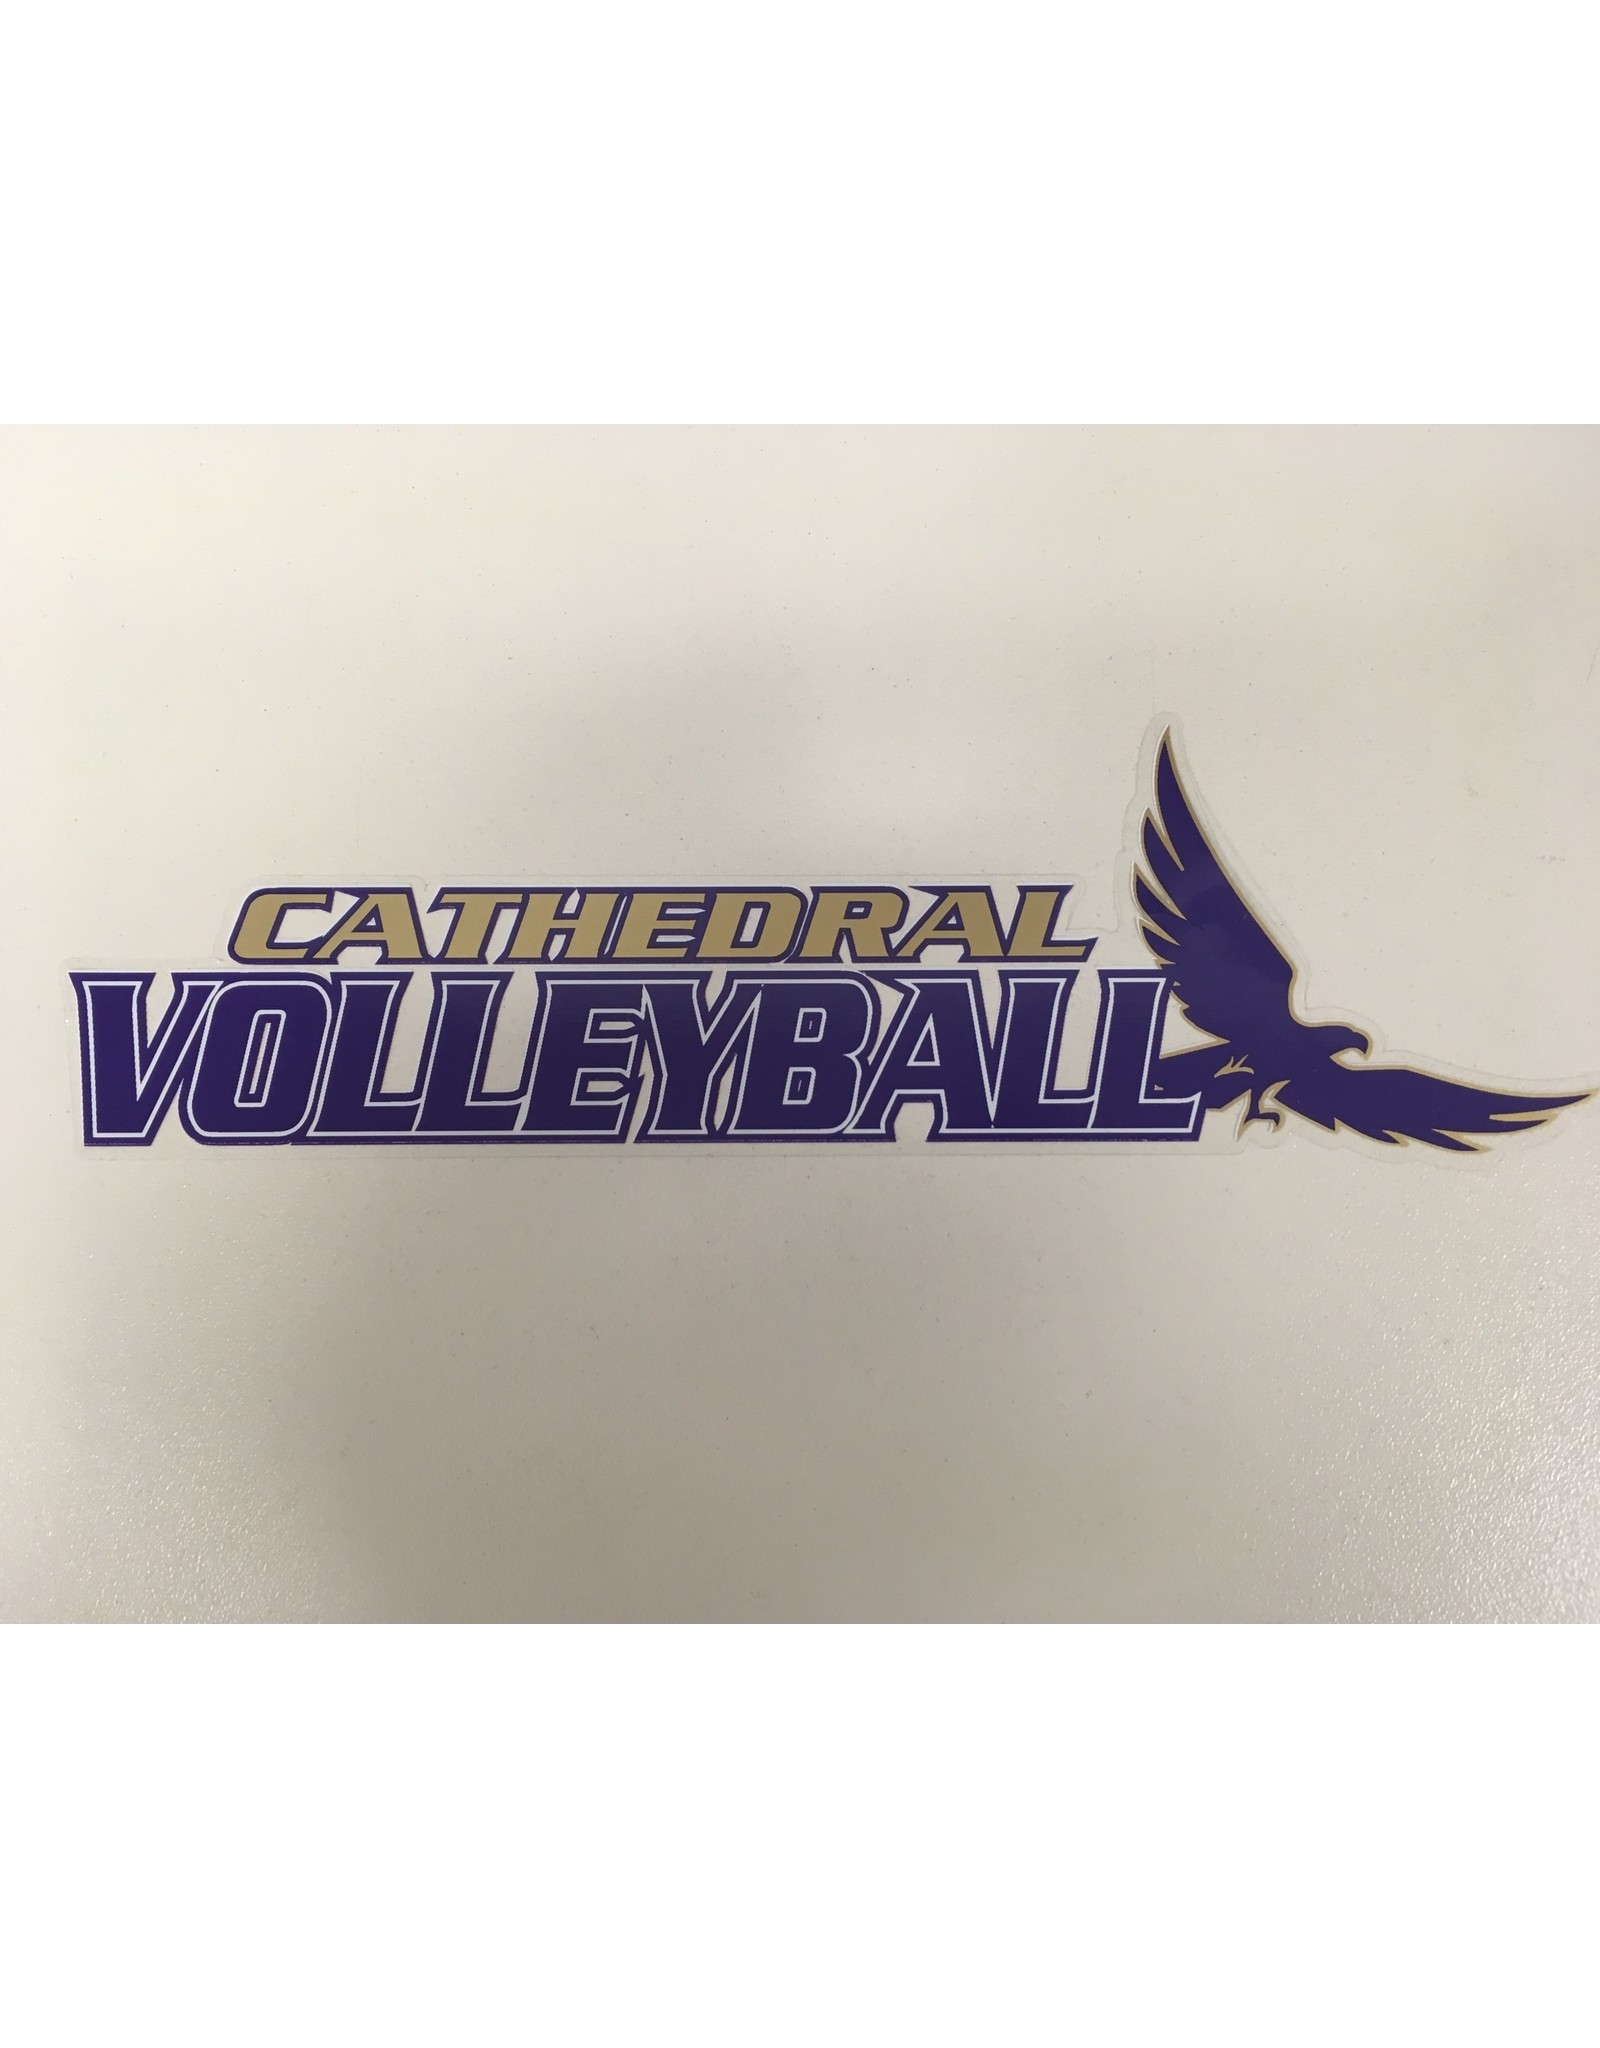 DECAL-CATHEDRAL VOLLEYBALL